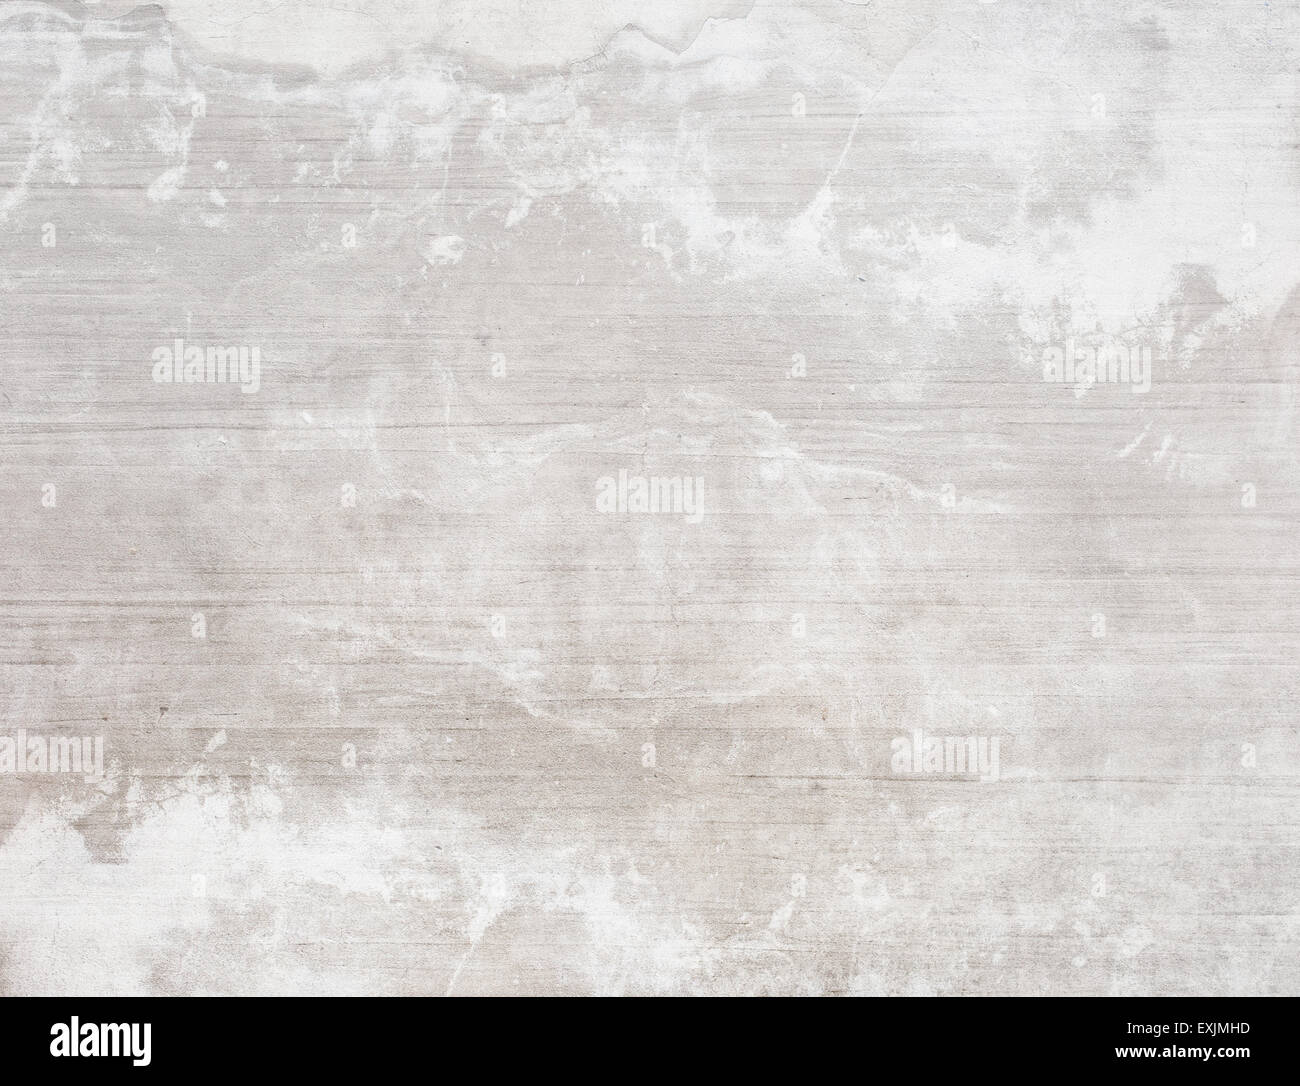 Concrete White Wall Texture Background Stained And Marbled